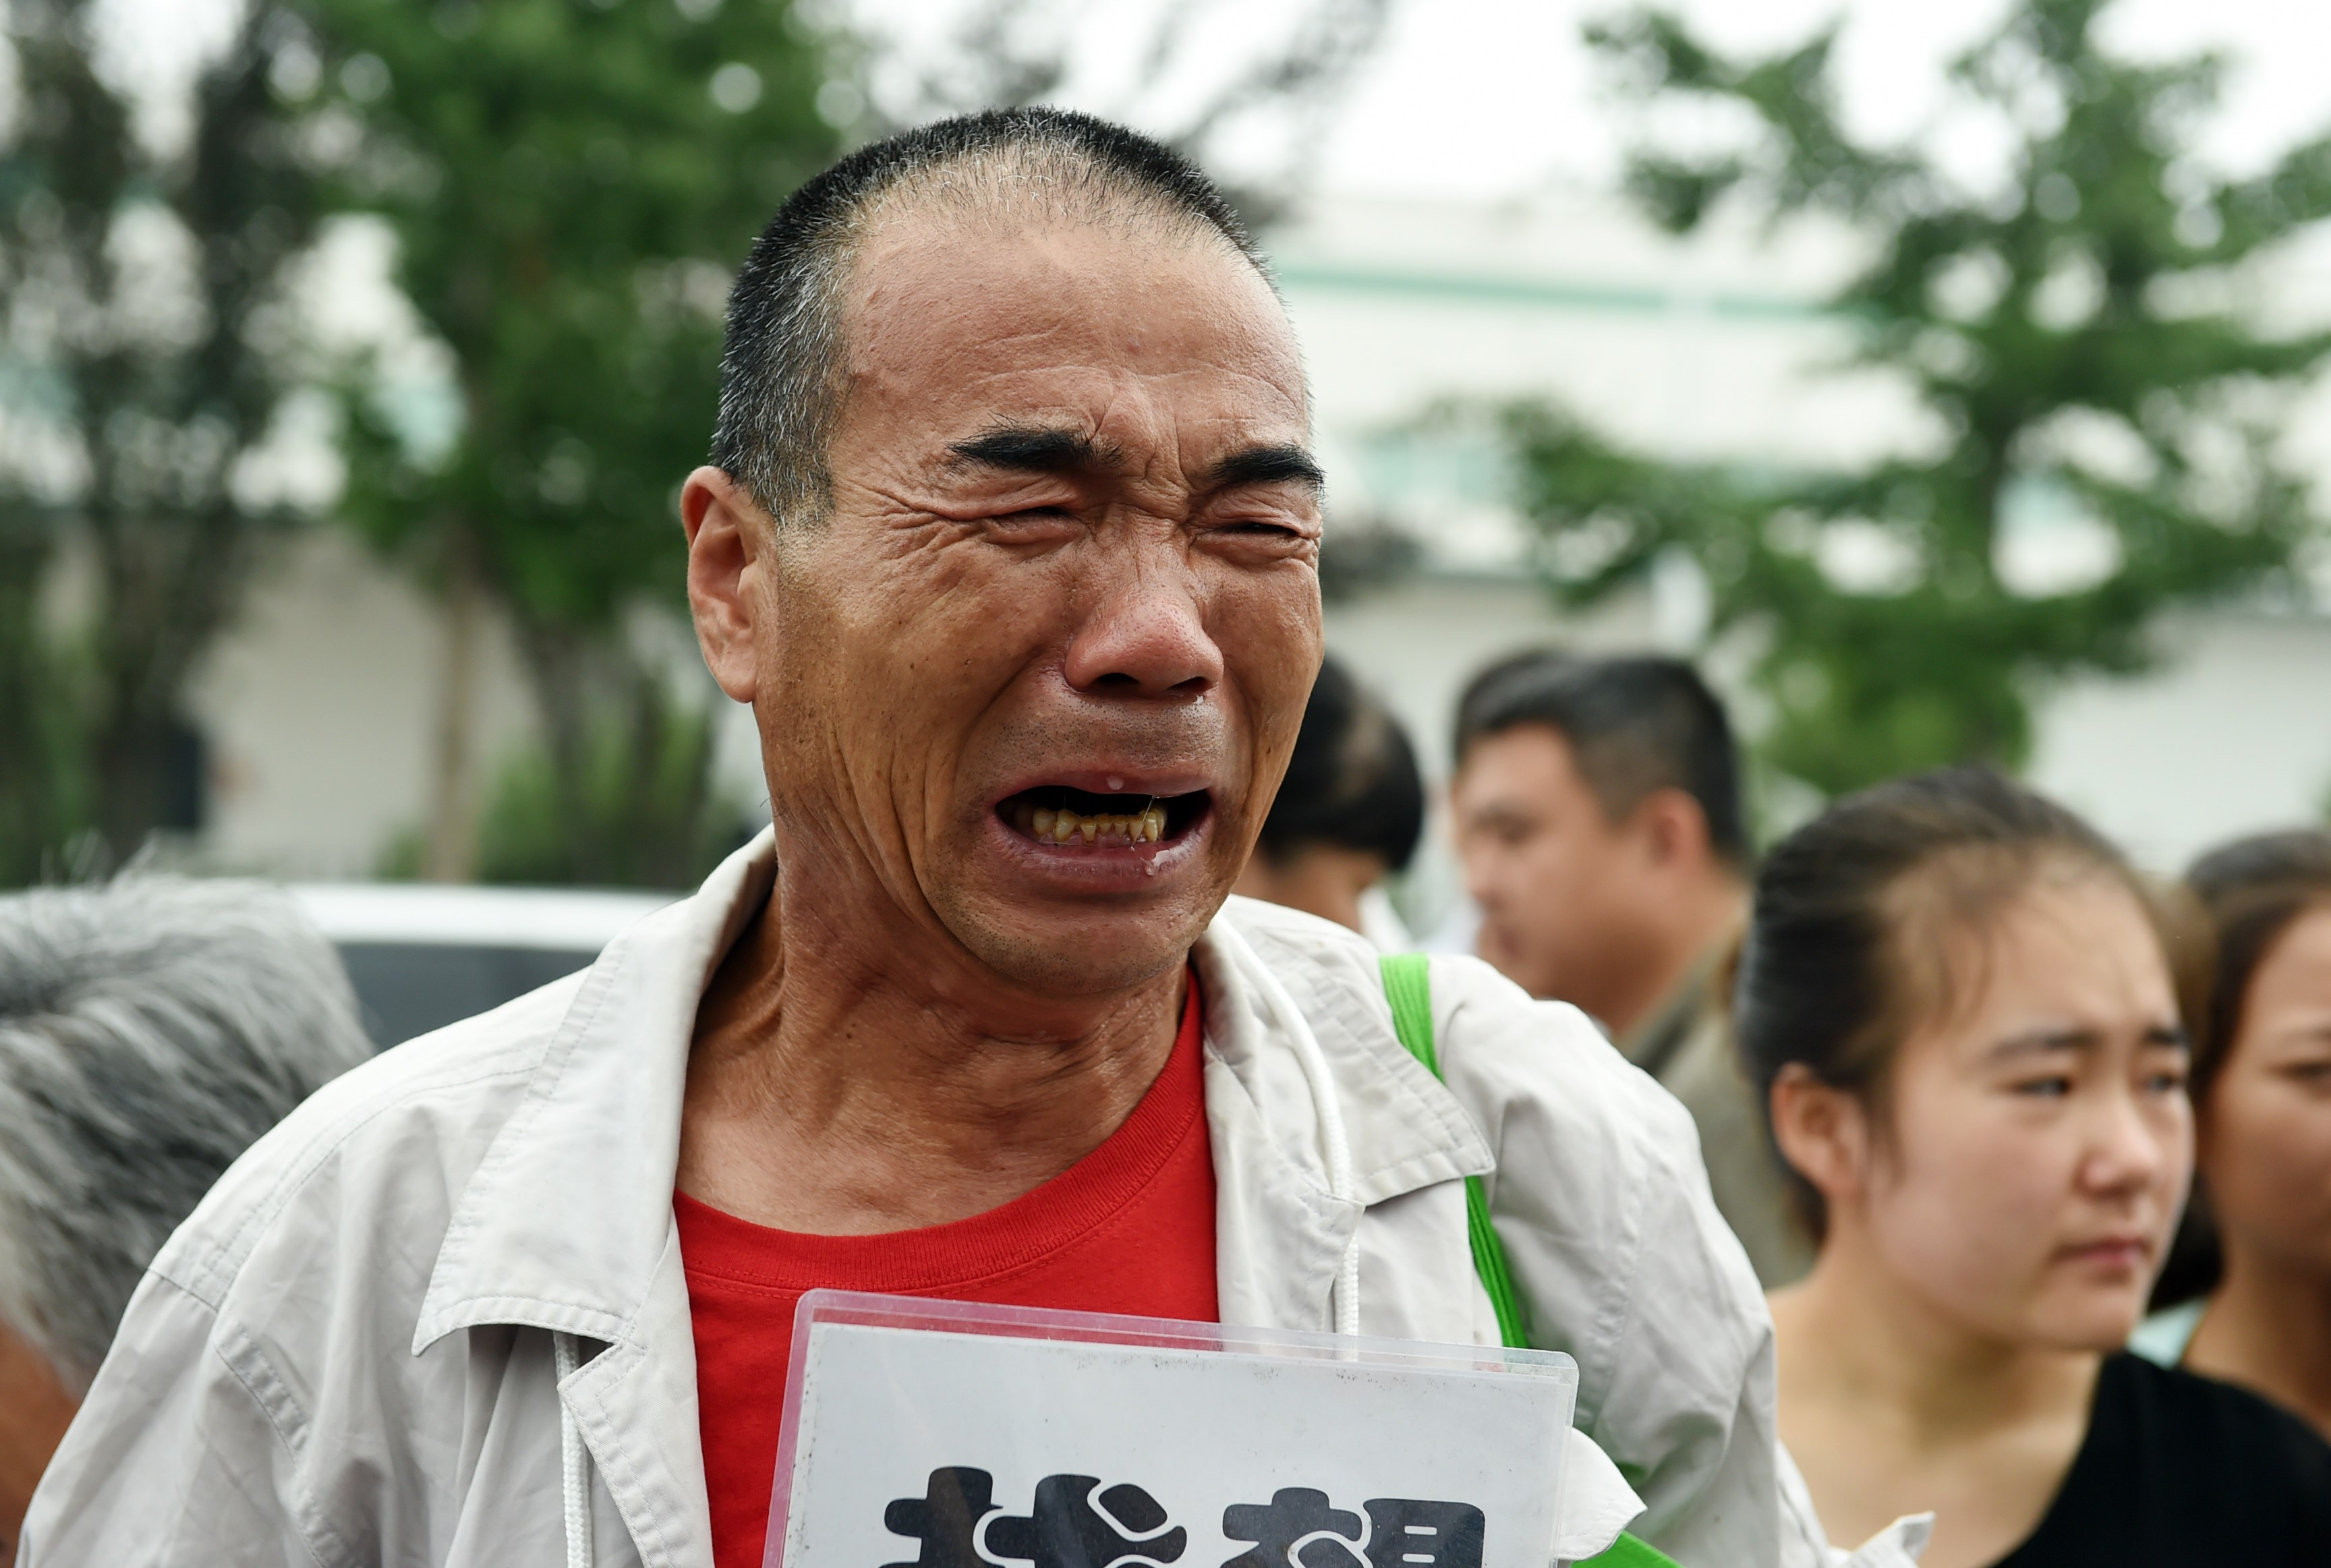 A relative of a passenger on missing Malaysia Airlines MH370 cries while waiting for an expected meeting with Malaysian officials, outside an office on the outskirts of Beijing on August 7, 2015. (GREG BAKER/AFP/Getty Images)